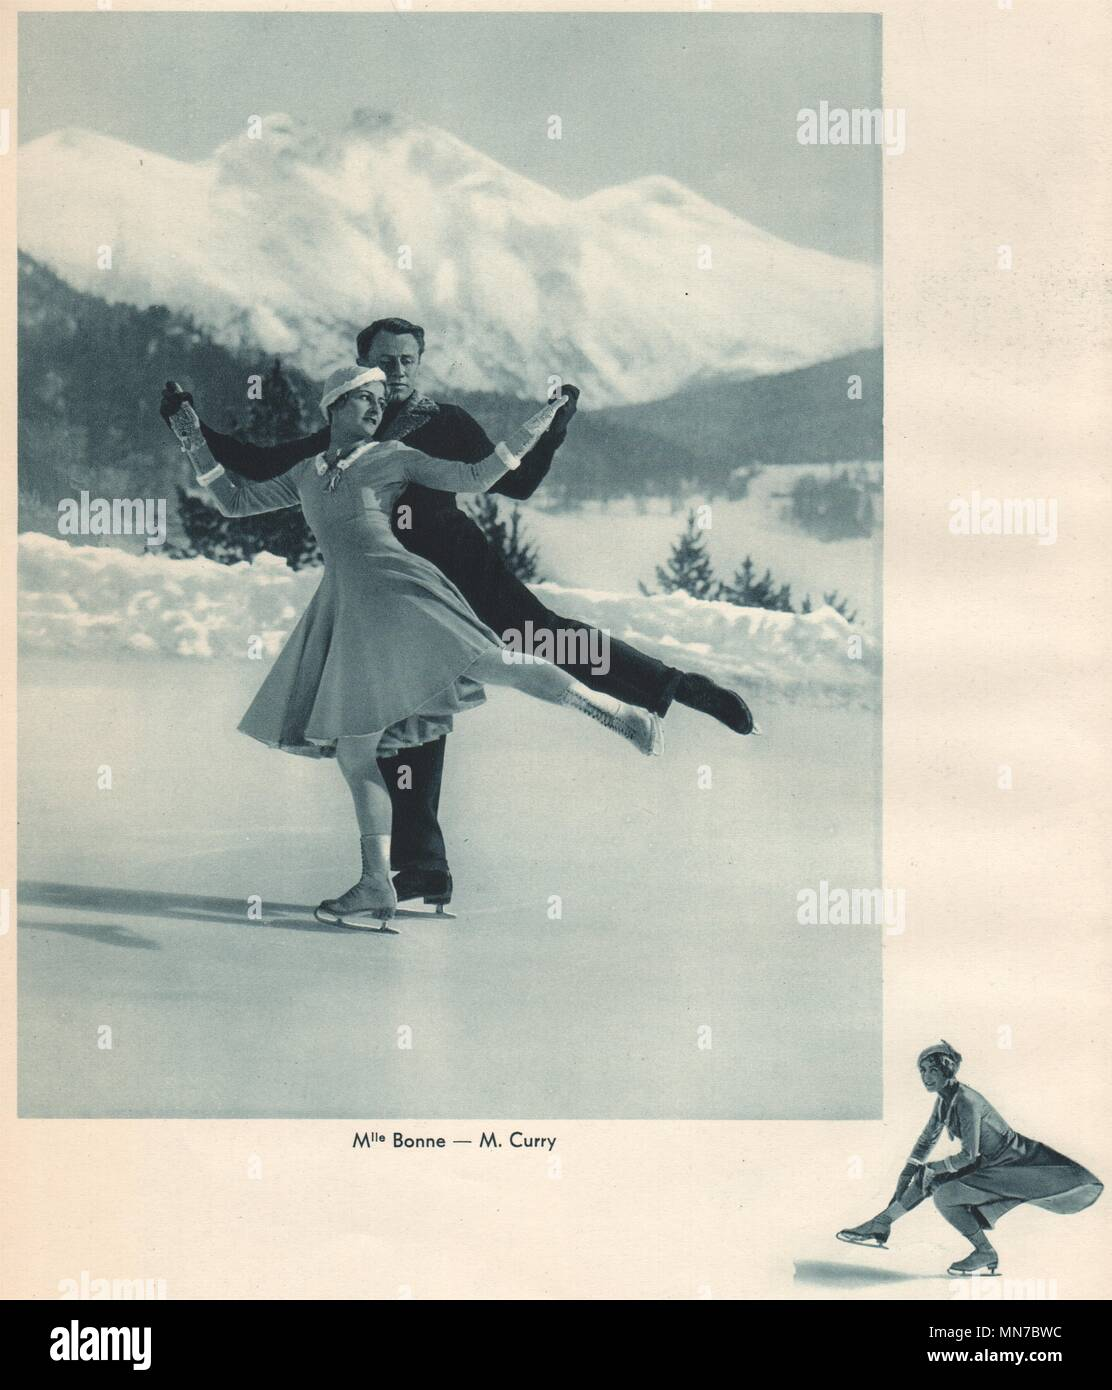 ICE FIGURE SKATING. Mlle Lucienne Bonne - M. Curry 1935 old vintage print - Stock Image